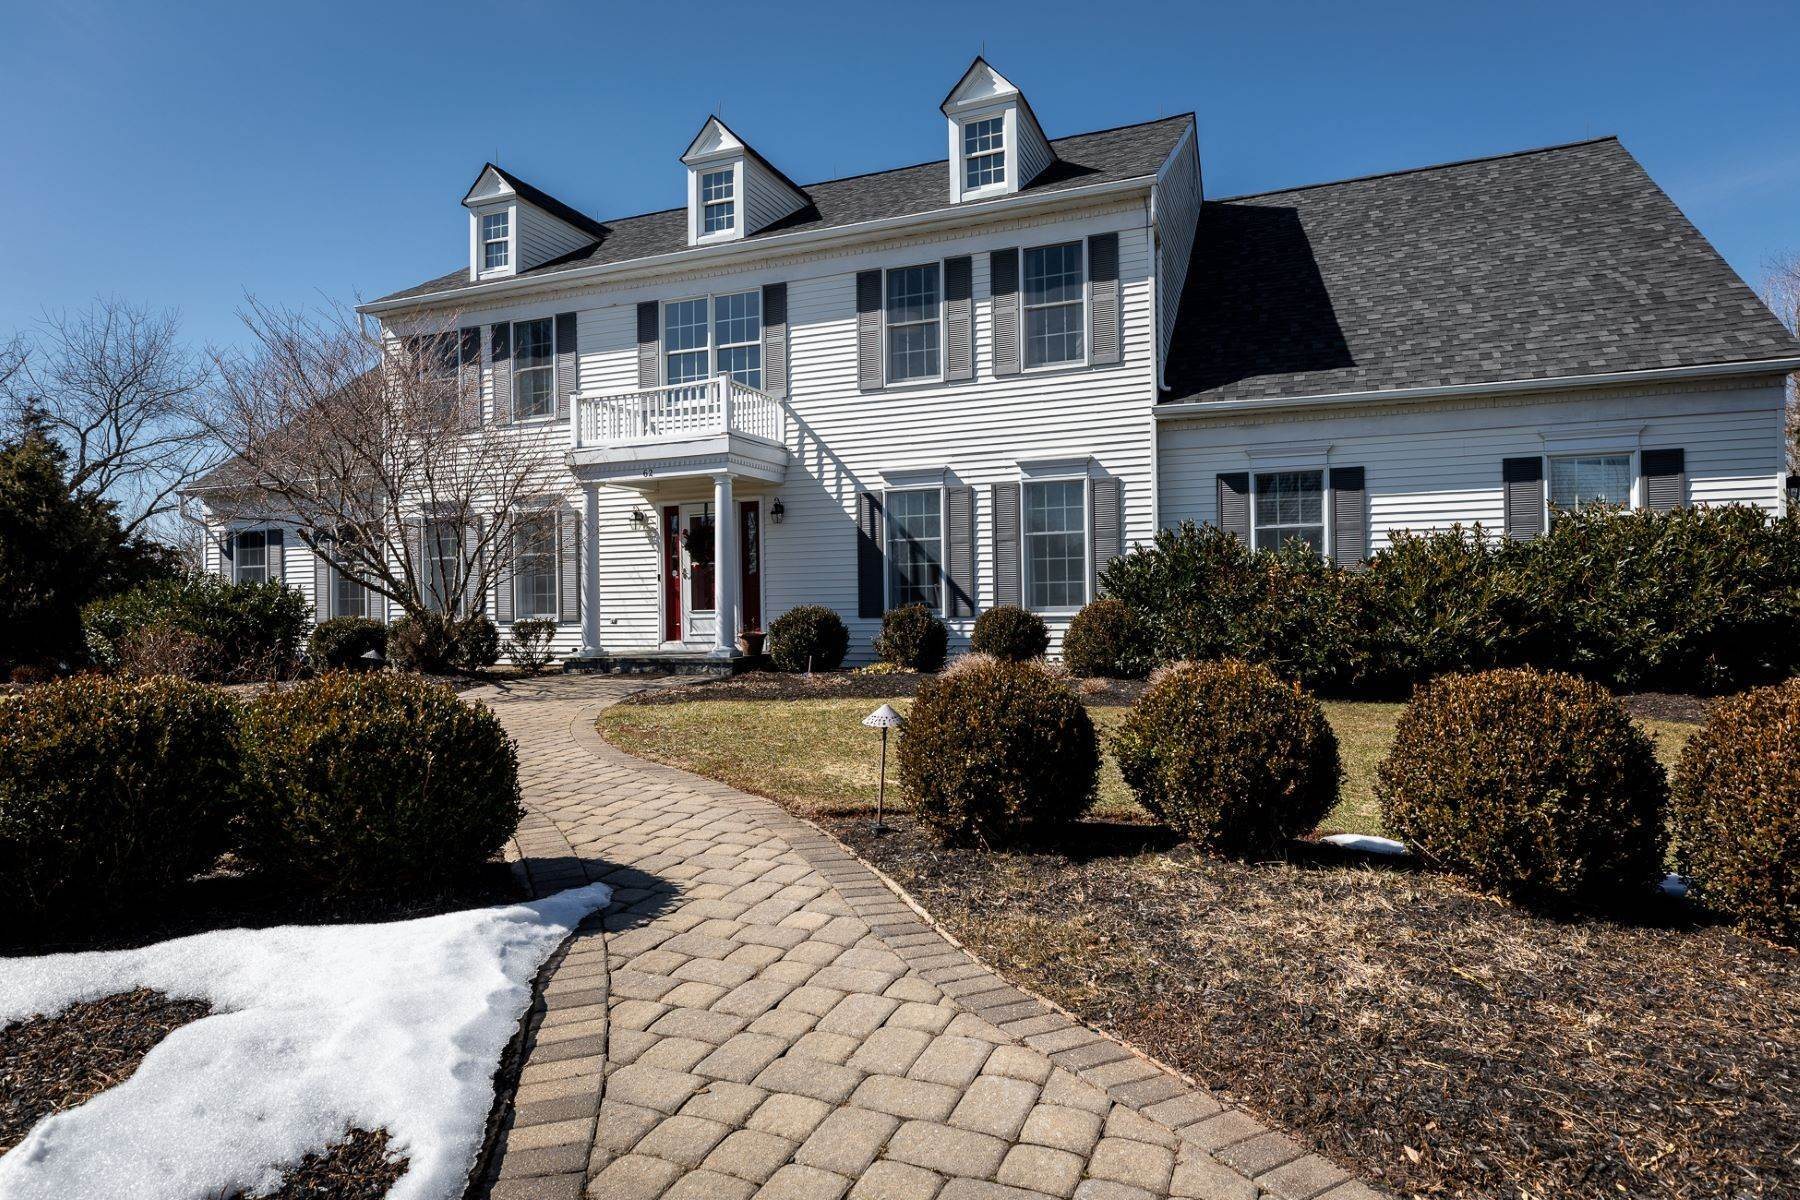 Single Family Homes for Sale at The Ideal Show Home 62 Doyle Lane, Belle Mead, New Jersey 08502 United States